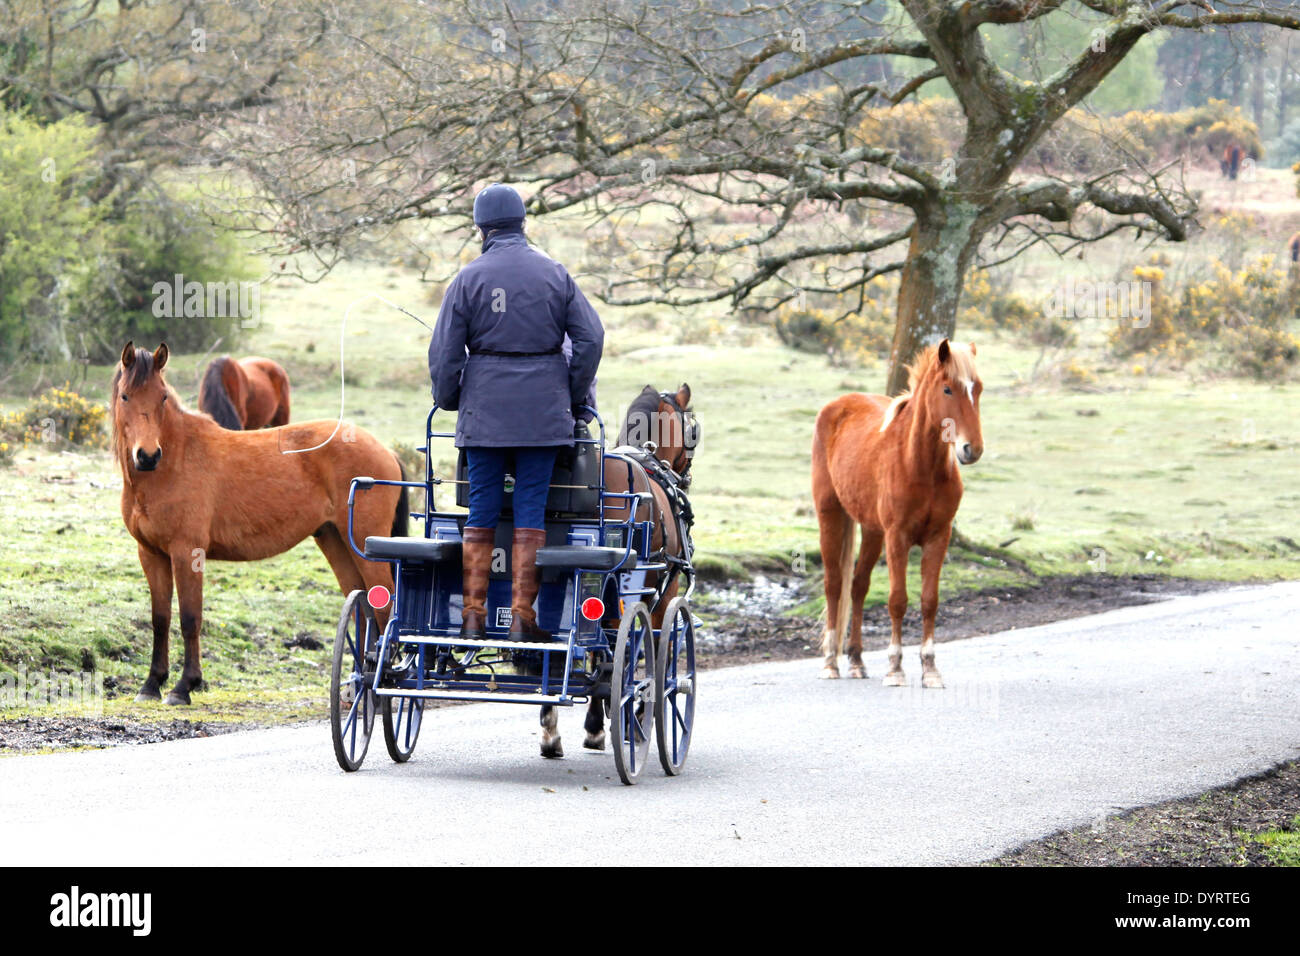 A pony & trap are help up on a country lane by a small group of wild ponies. - Stock Image